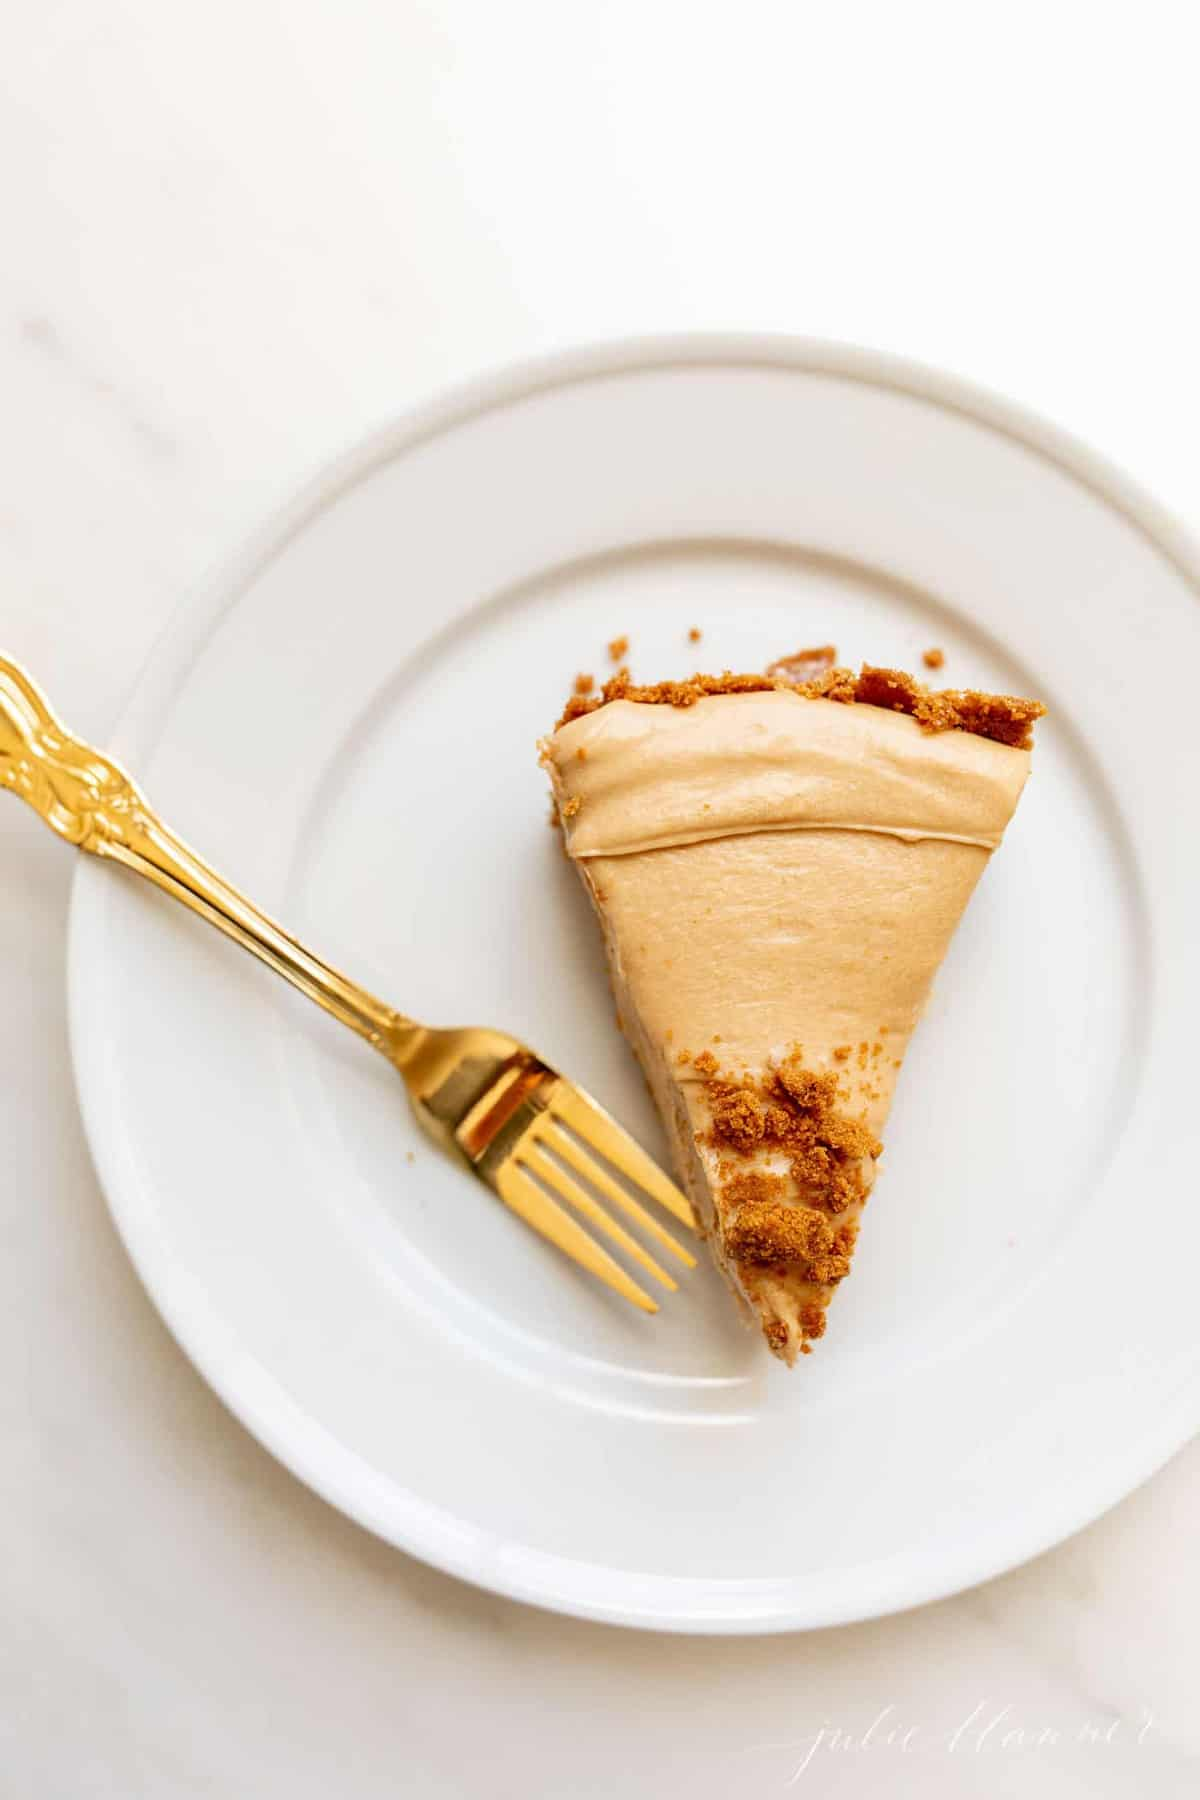 A white plate with gold fork to the side of a slice of no bake cookie butter cheesecake.